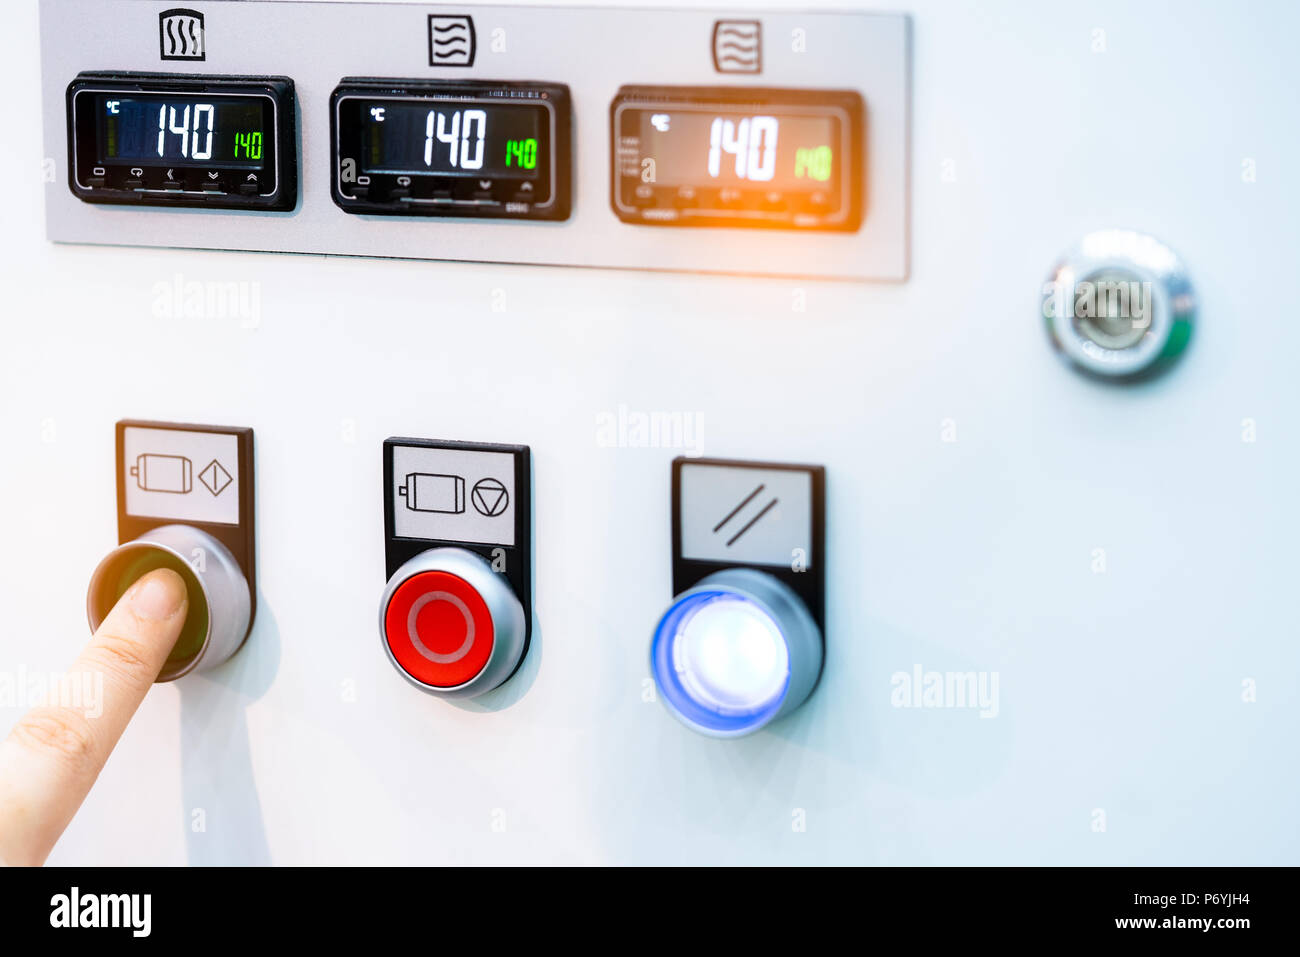 Engineer's hand push green button to open temperature control machine. Temperature control panel cabinet contain digital screen display for temperatur - Stock Image